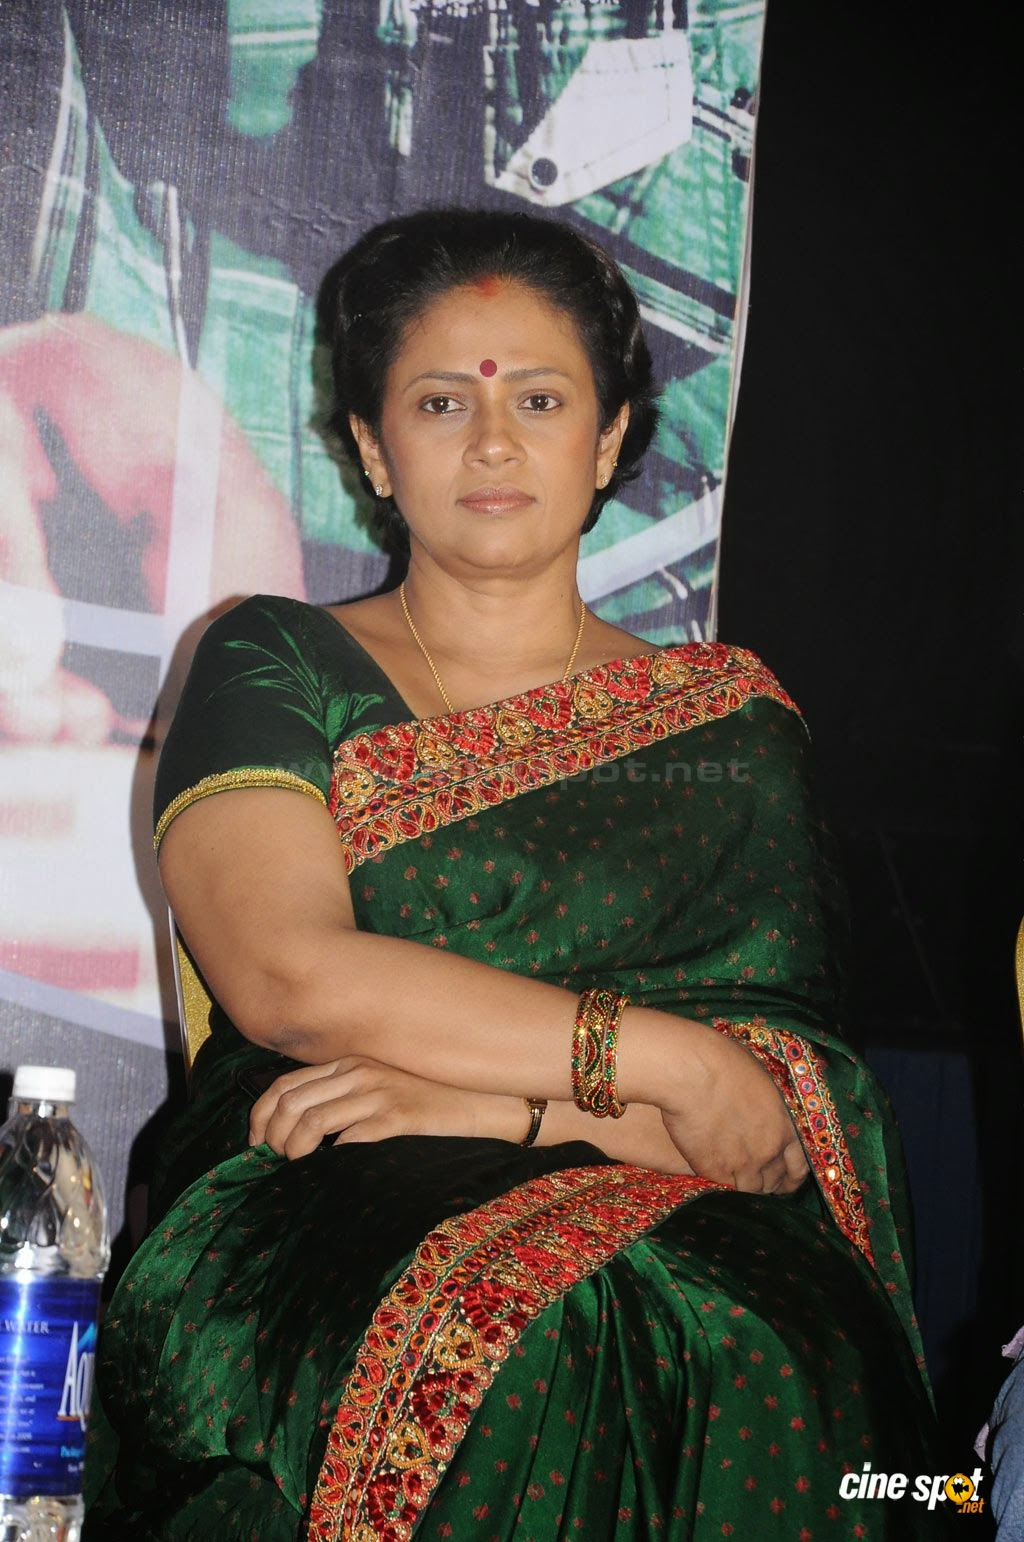 Ram Ramakrishnan Aunty Hot Lakshmi Ramakrishnan Latest Hot Photos Actress Lakshmi Ramakrishnan